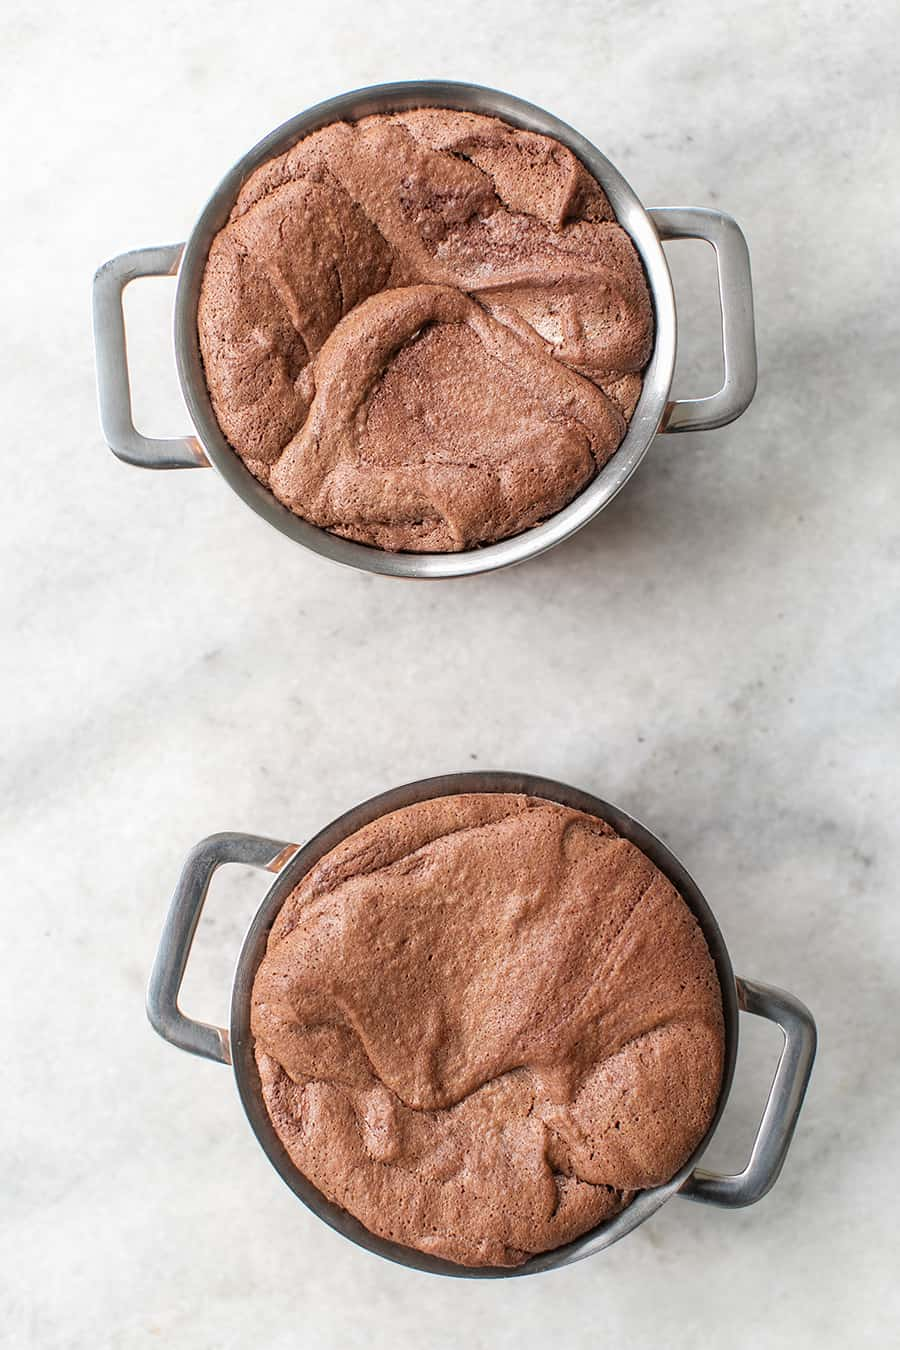 Chocolate Soufflé in min pots